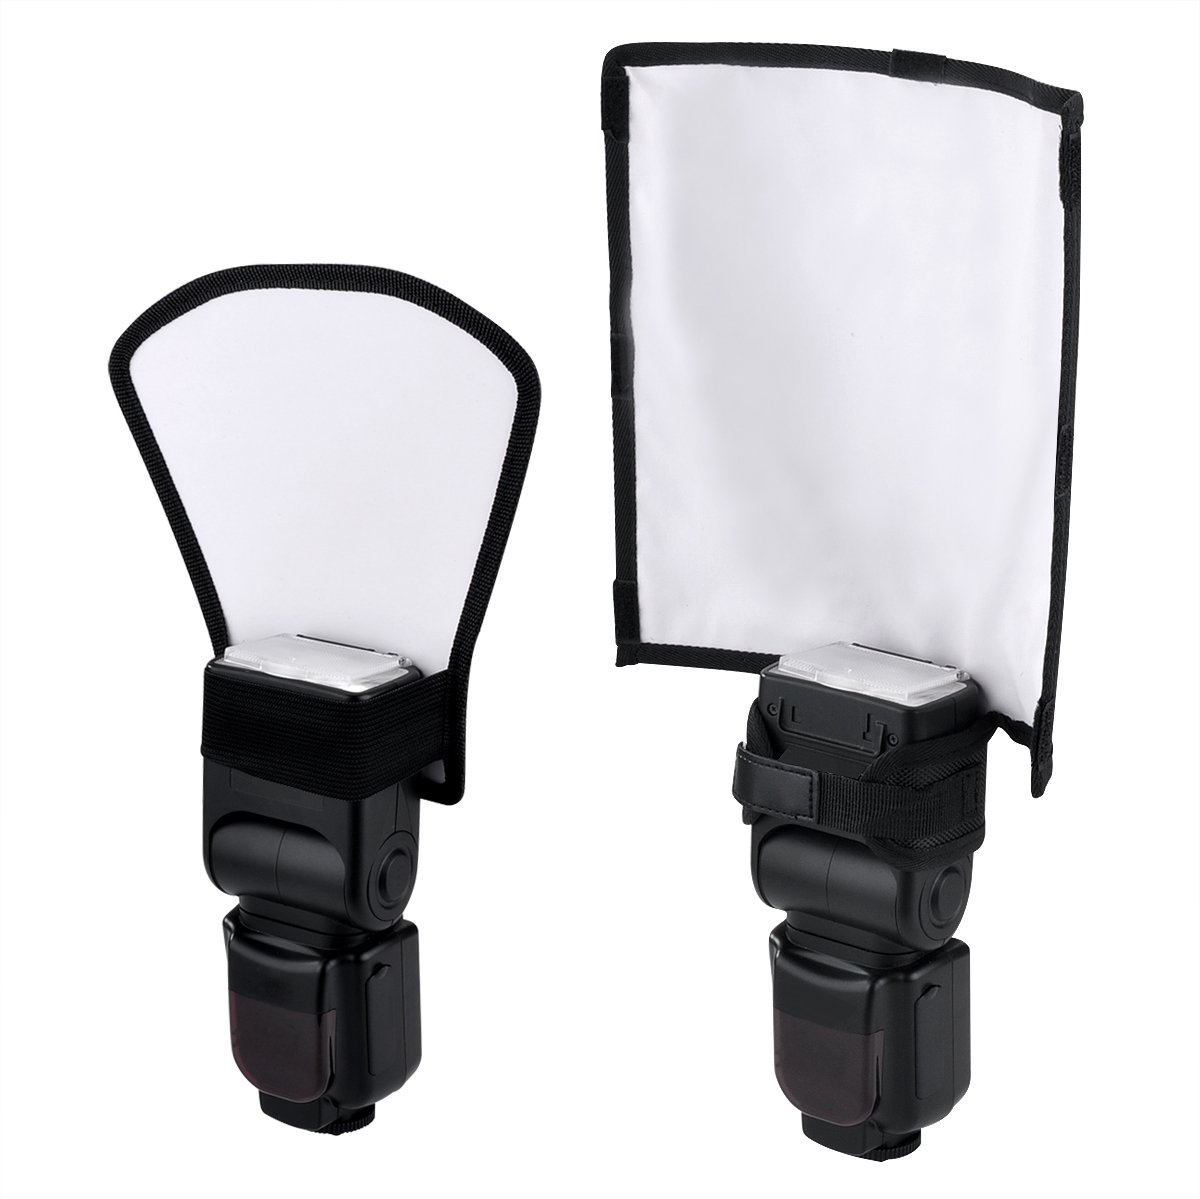 Veatree Flash Diffuser Reflector Kit - Bend Bounce Positionable Diffuser + Silver / White Reflector, Universal Mount for Canon Yongnuo Nikon and Other Speedlight